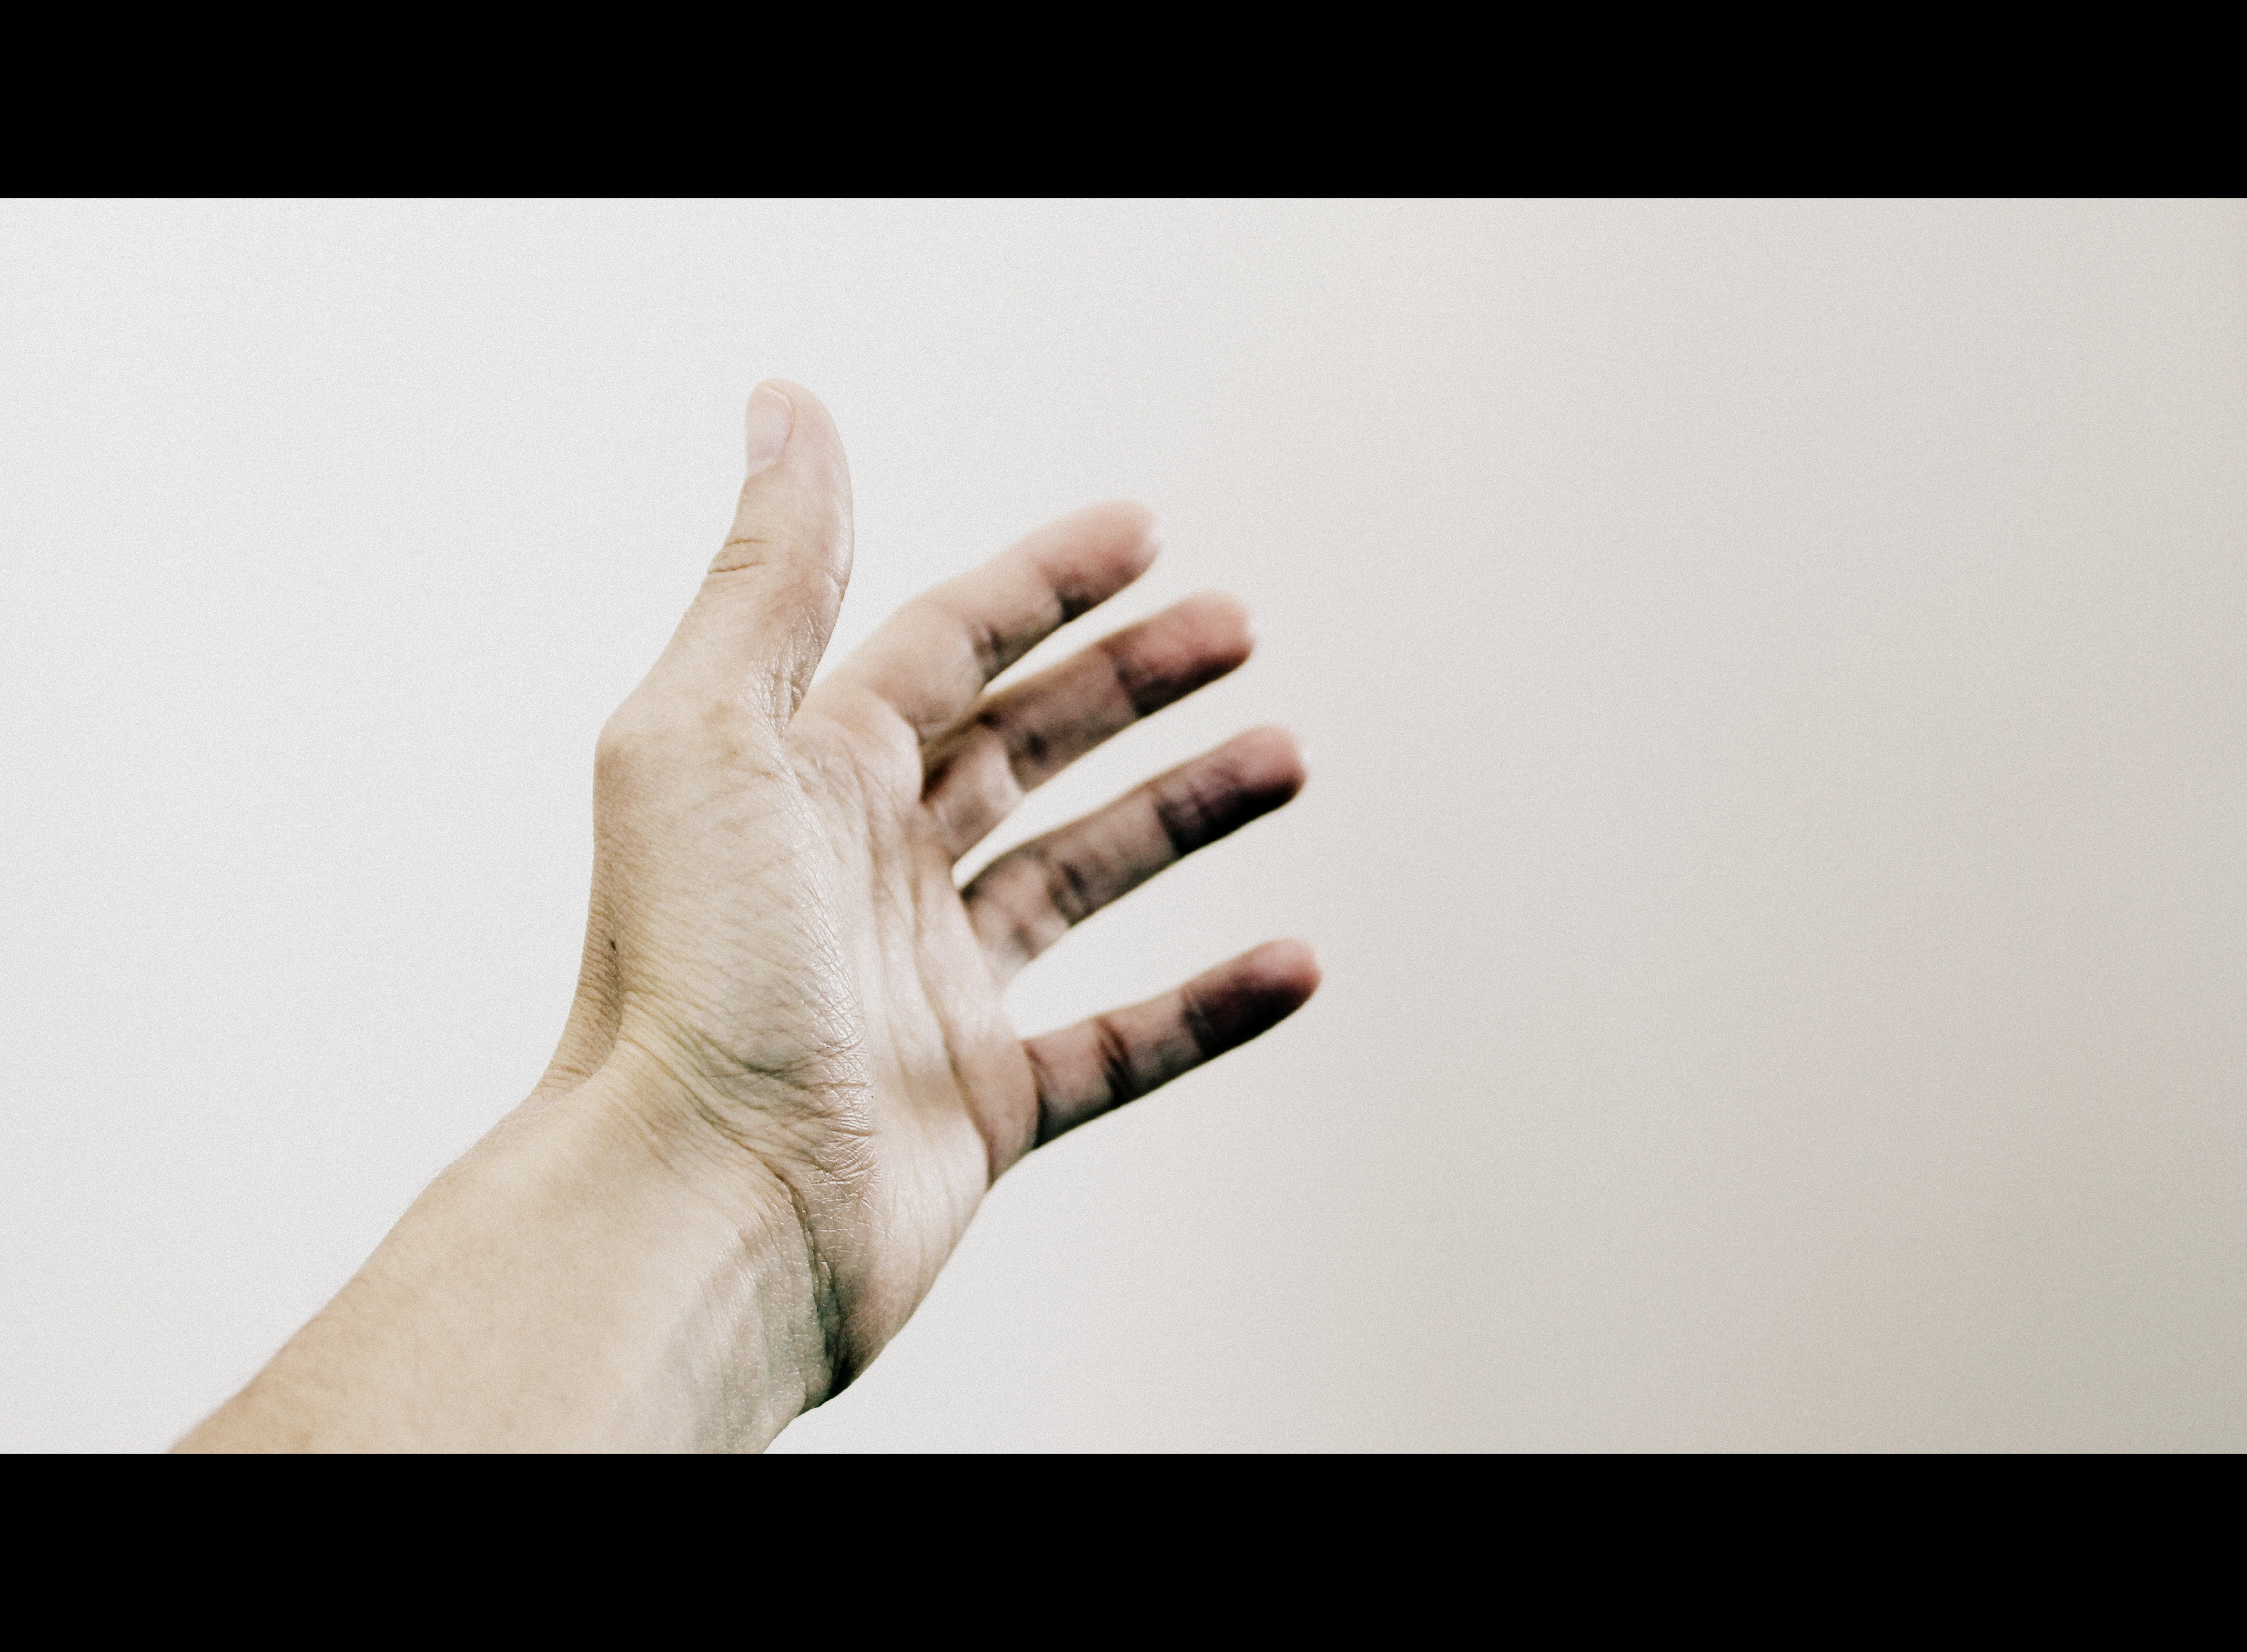 Reaching Out to Touch ...